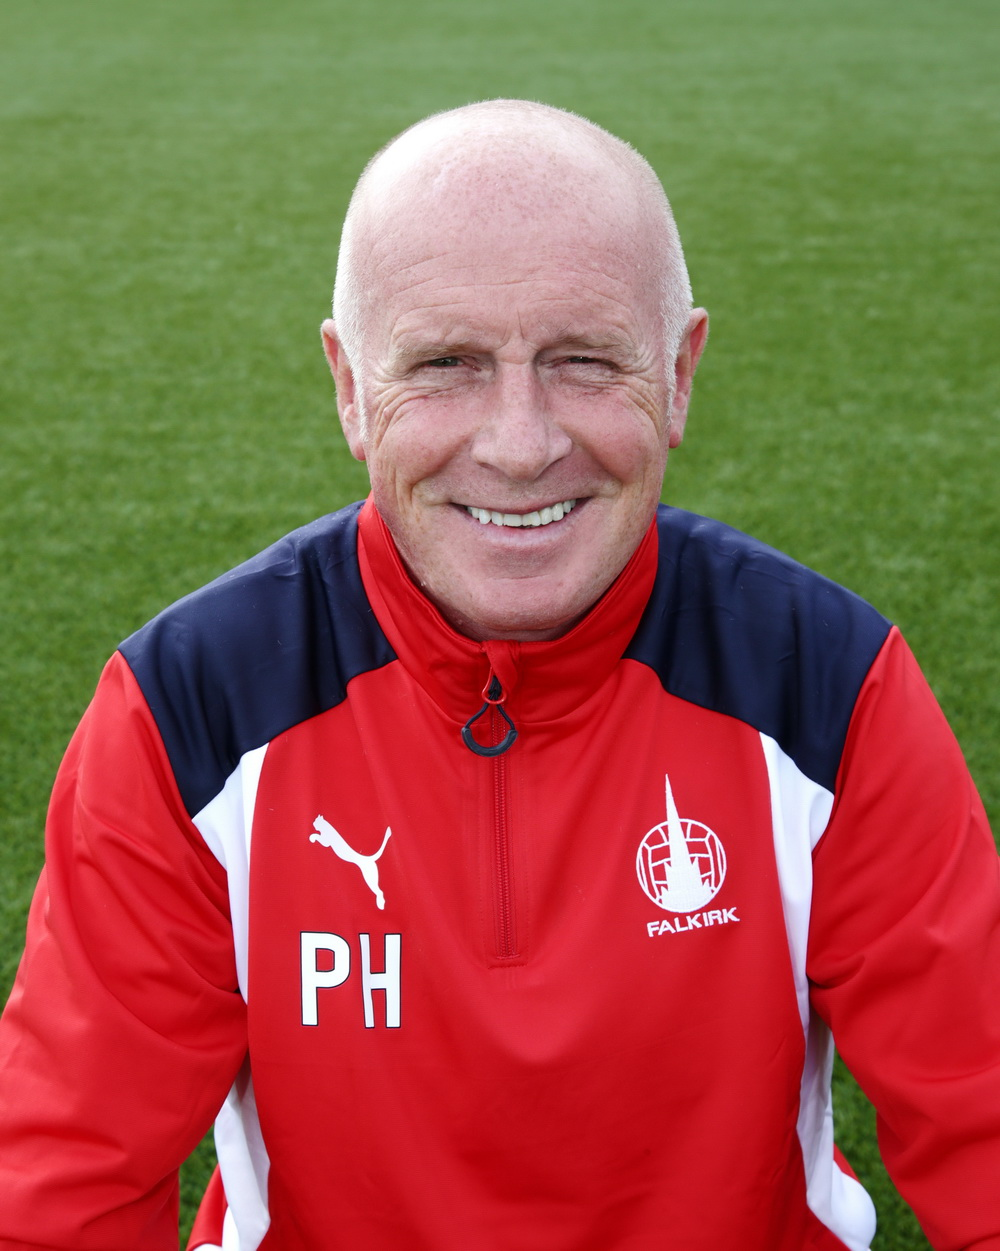 Falkirk boss Peter Houston hopeful of new signing in time for Scottish Cup clash with Morton